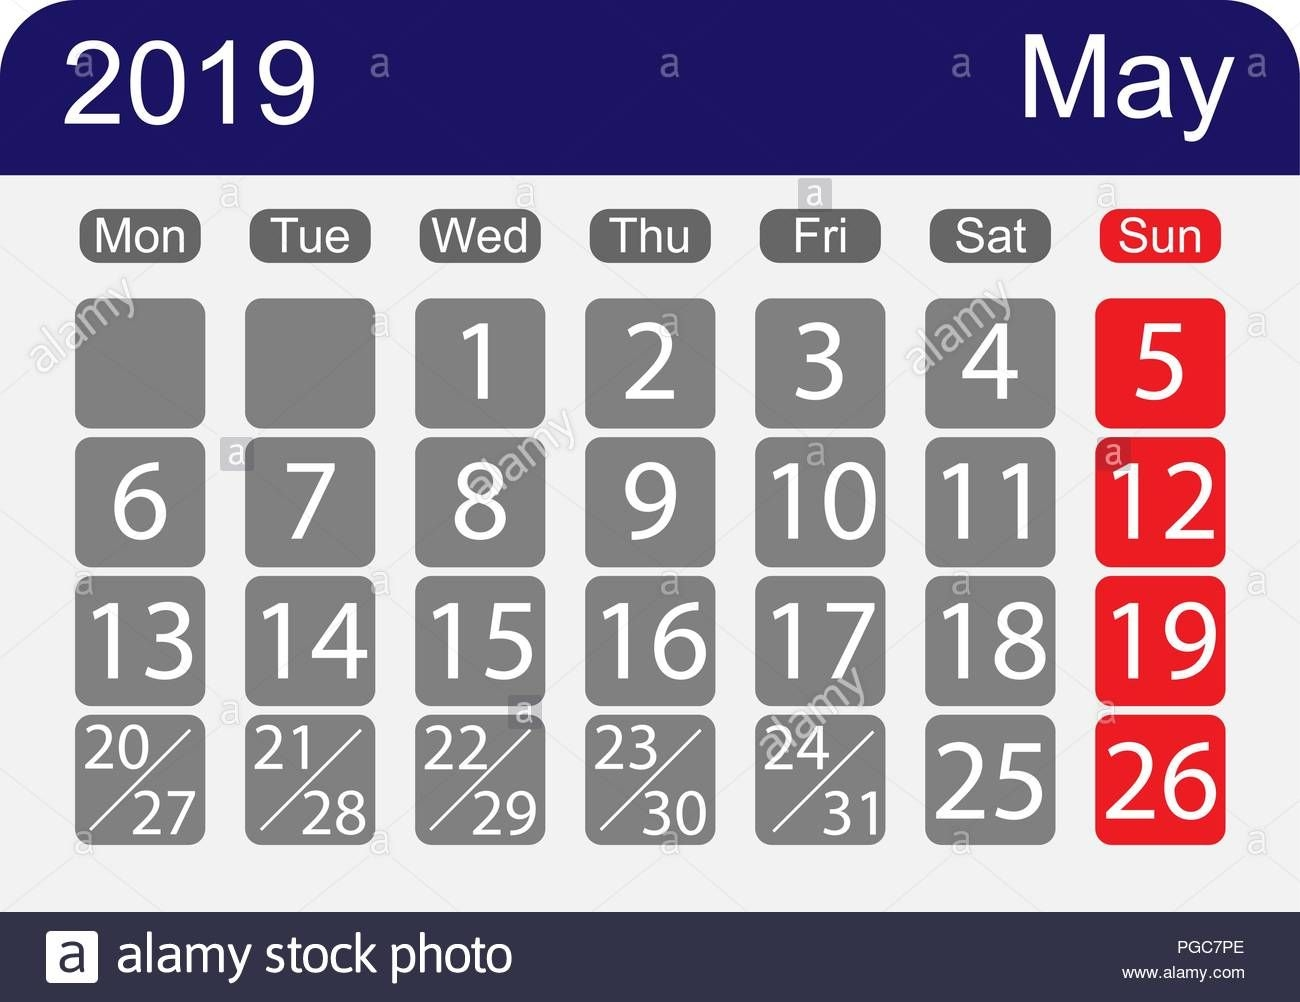 calendar sheet 2019 for the month of may, a week with one